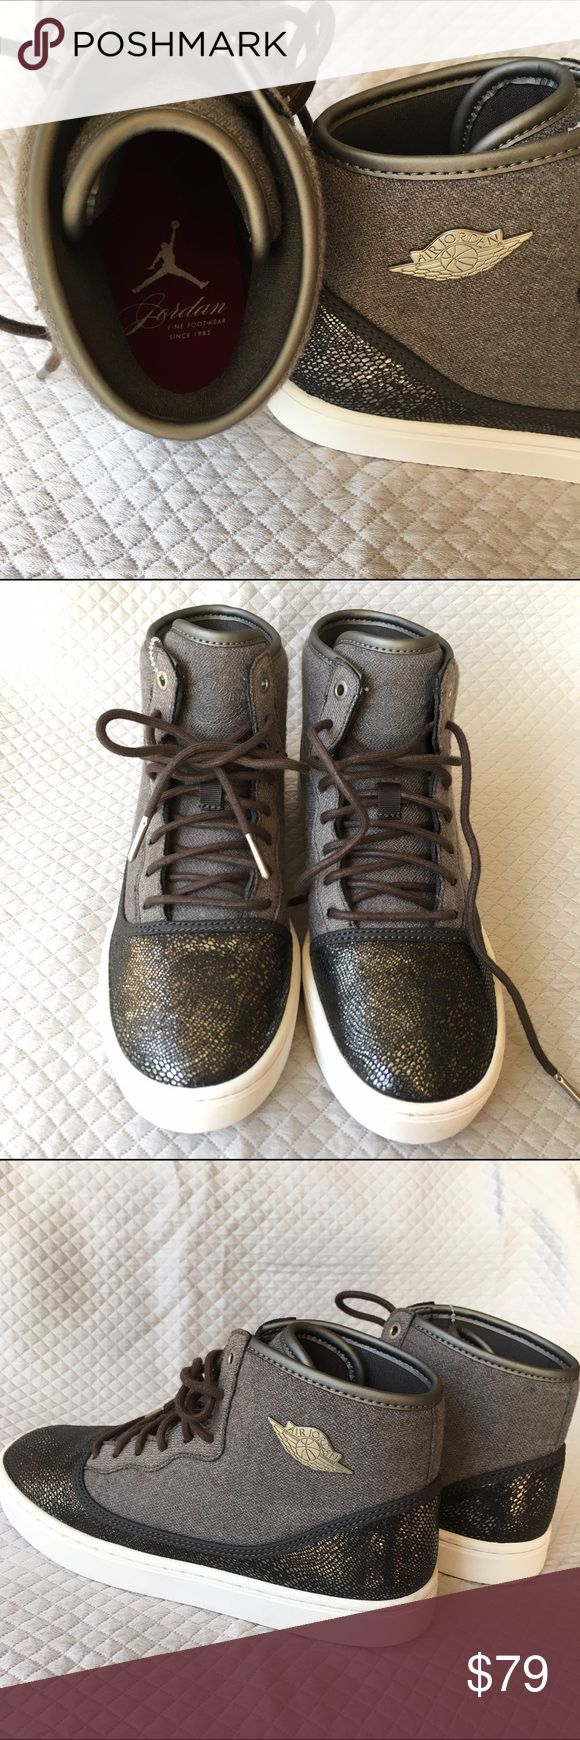 Air Jordan size 7.5 women (6Y) Feminine and subtly sparkly Air Jordan high tops. Size is 6 youth which converts to 7.5 women. I am a 7.5 and these fit me perfect (I just don't need another pair of Jordan's!).  Gray colors with gold skin print on the toe section.  They almost look like a mauve color, but it's grey. New - has price tag attached but no box; authentic. Jordan Shoes Athletic Shoes